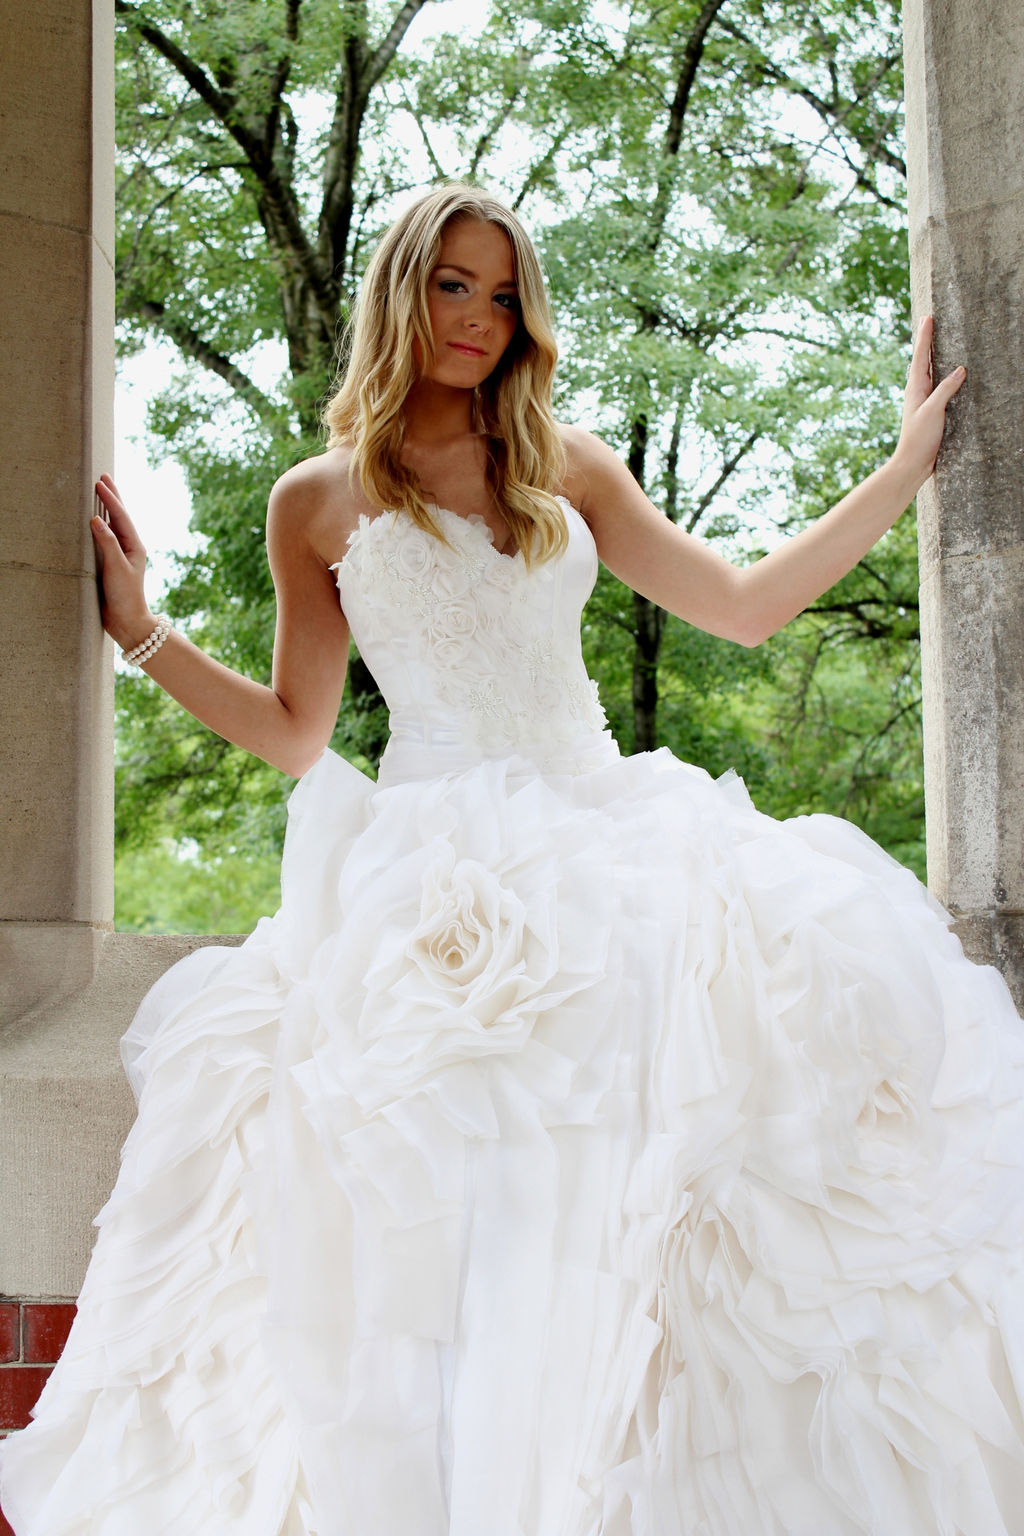 Lucio Vanni Bridal and Couture  Designer Wedding Dresses Cleveland